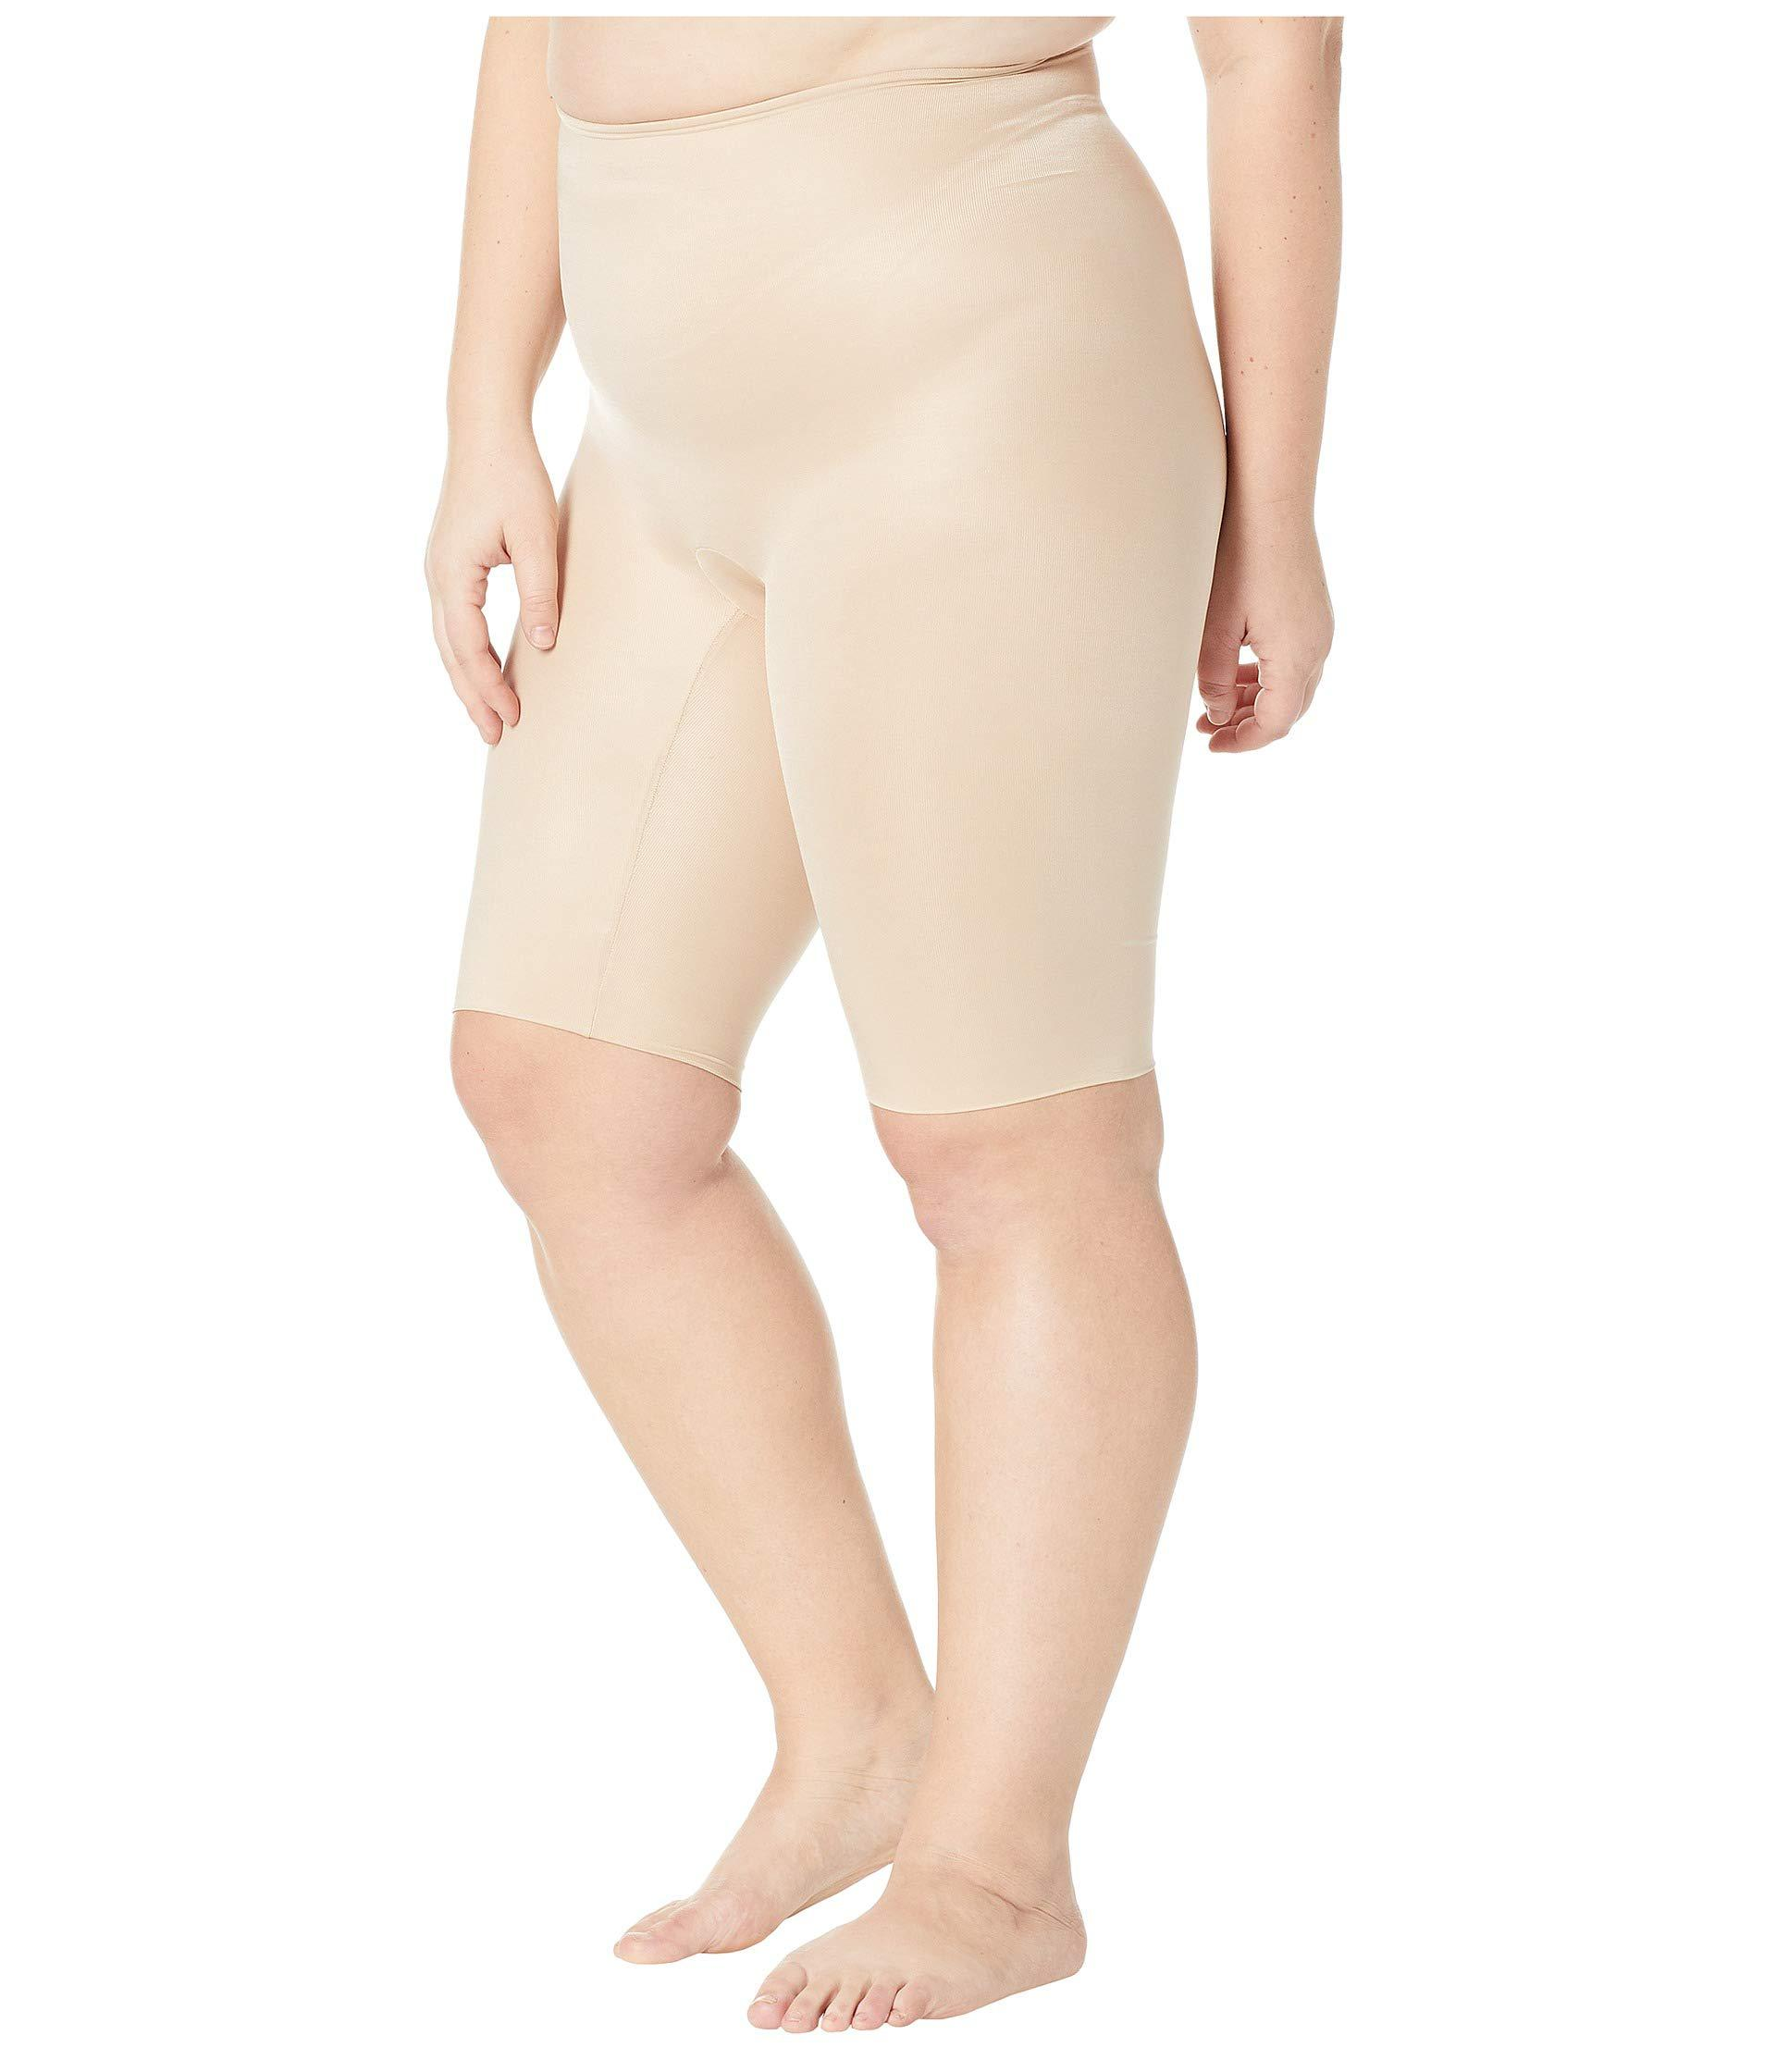 5314404fc7e Lyst - Spanx Plus Size Power Conceal-her Extended Length Shorts (natural  Glam) Women s Underwear in Natural